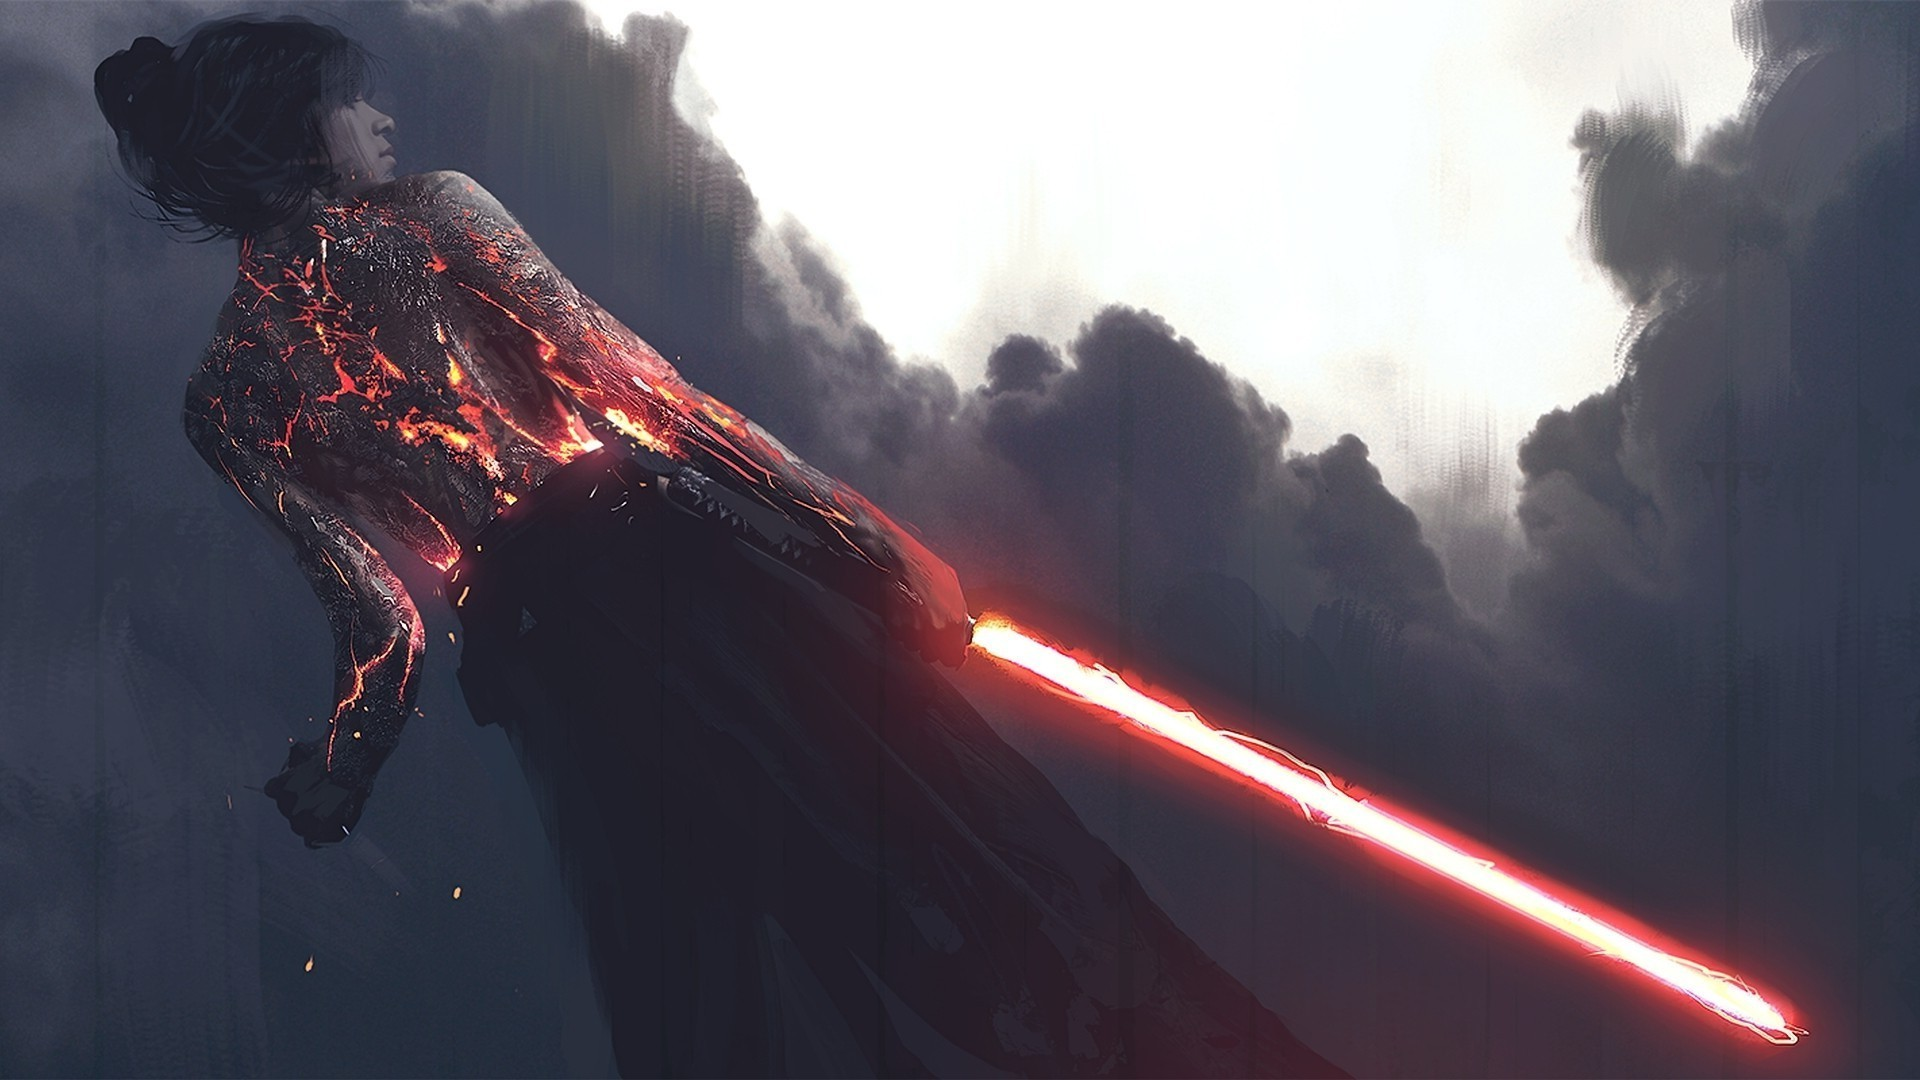 Star Wars, Sith, Comic Art Wallpapers HD / Desktop and Mobile Backgrounds